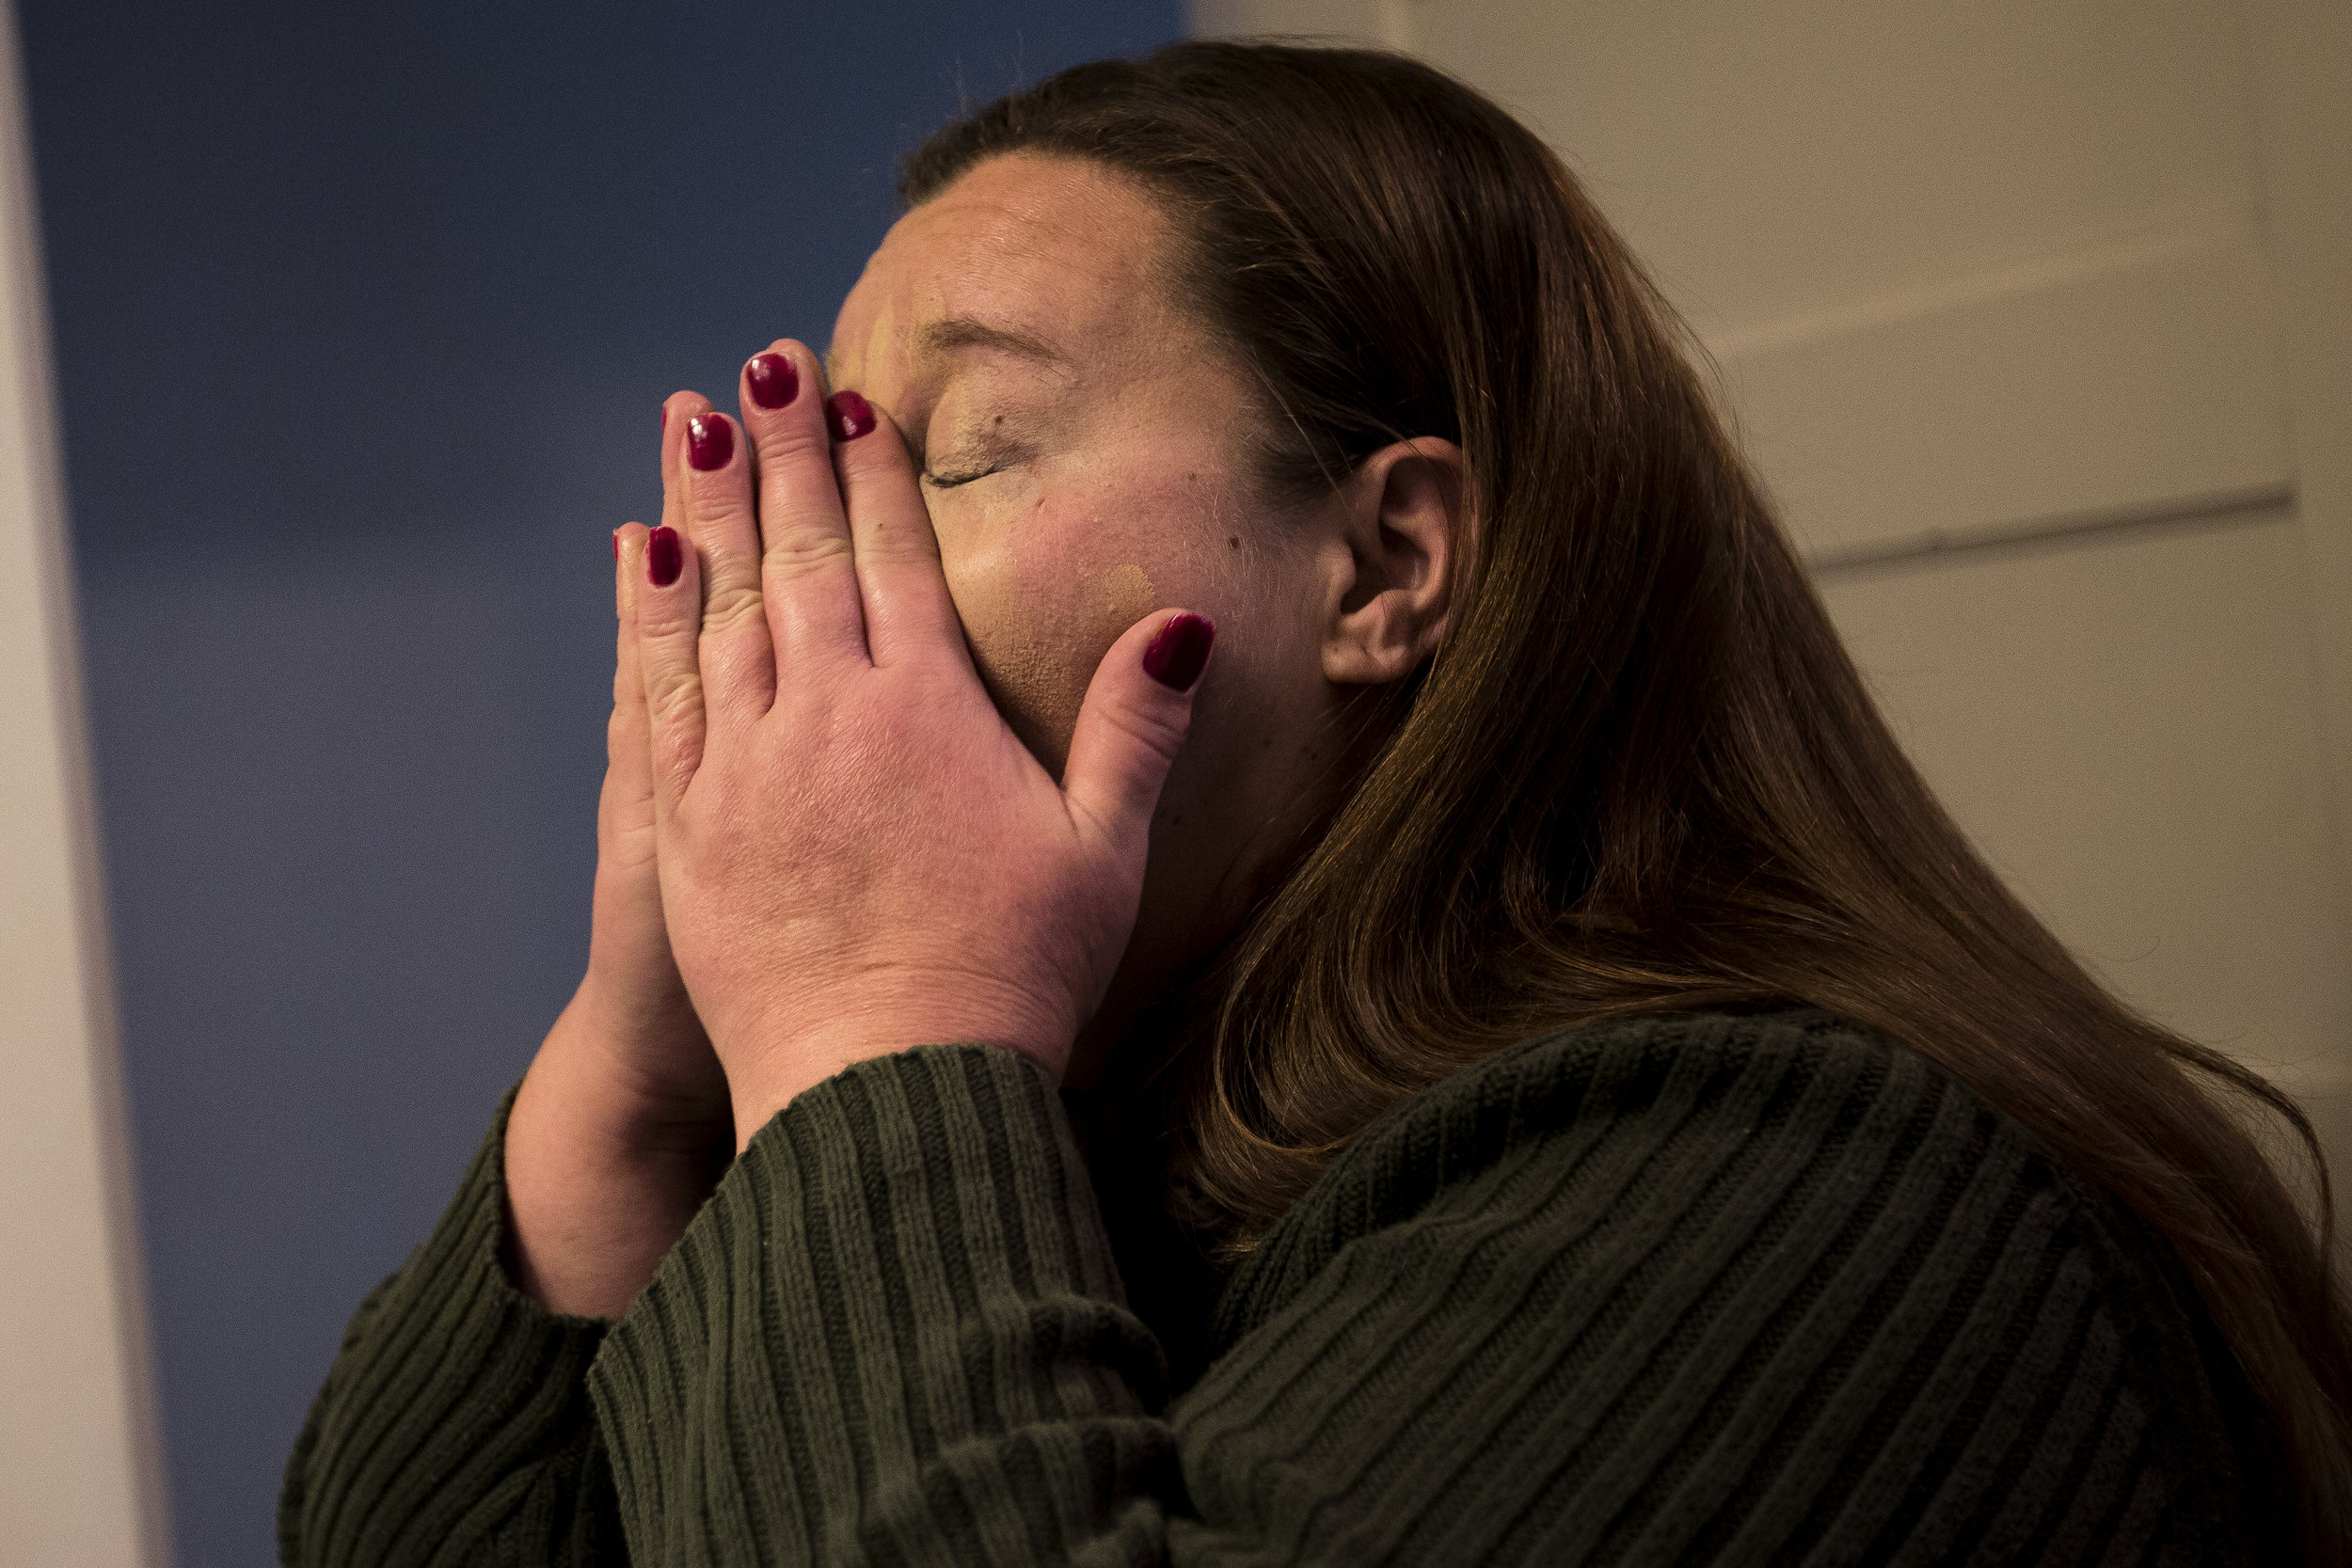 Jodi Chamberlain gets ready in her home in Wisconsin Rapids, October 10, 2017, to go to court to relinquish custody of her two sons to her sister-in-law. Though it was emotional, she said, it's for the best because she can maintain a relationship with them while focusing on recovery.